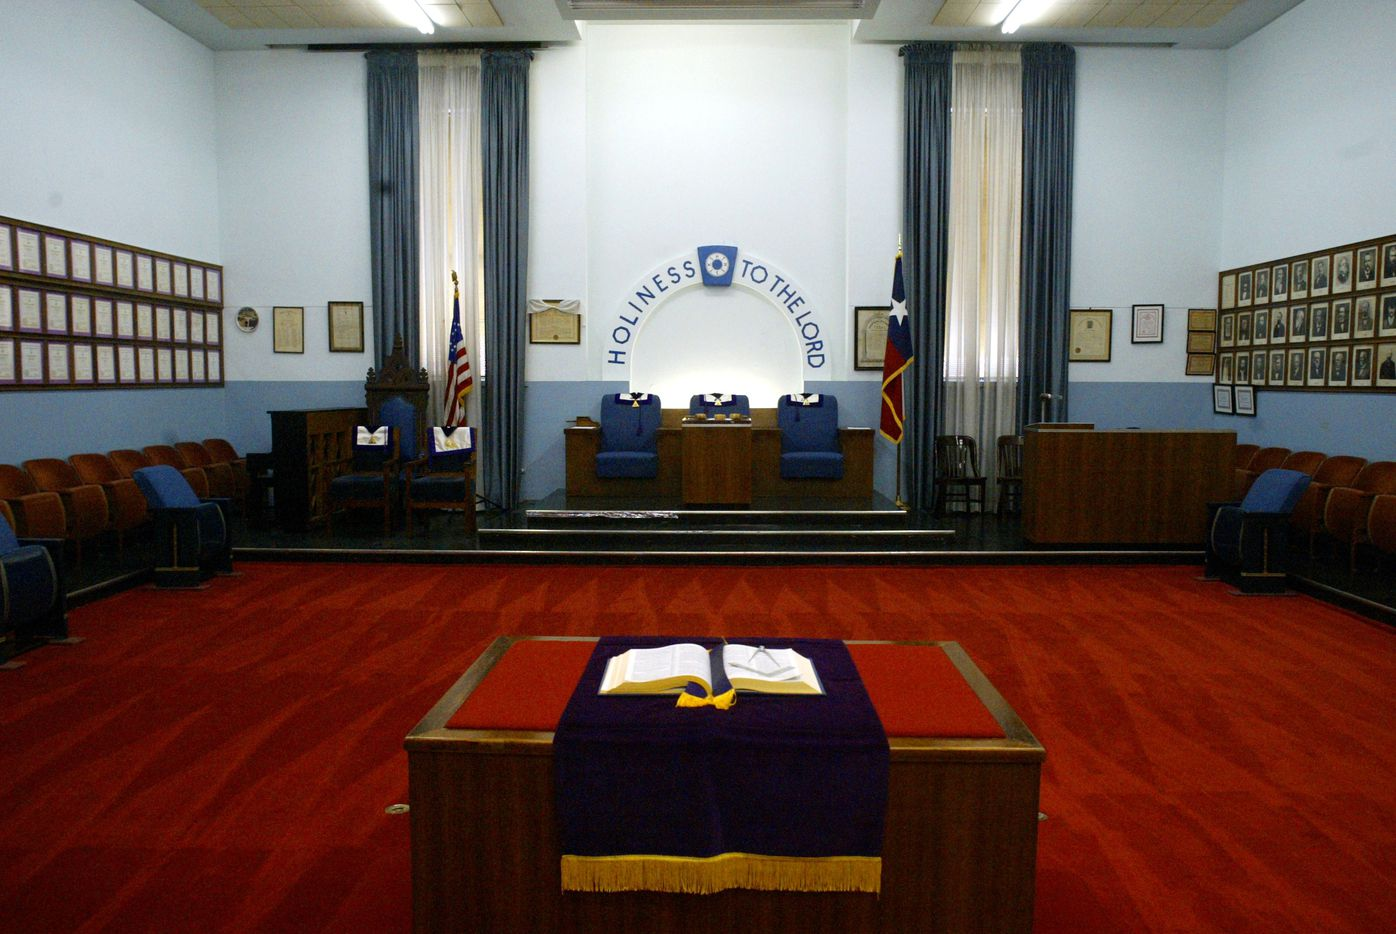 Interior shot of the old Masonic Temple, in Downtown Dallas in 2006 before the renovation.